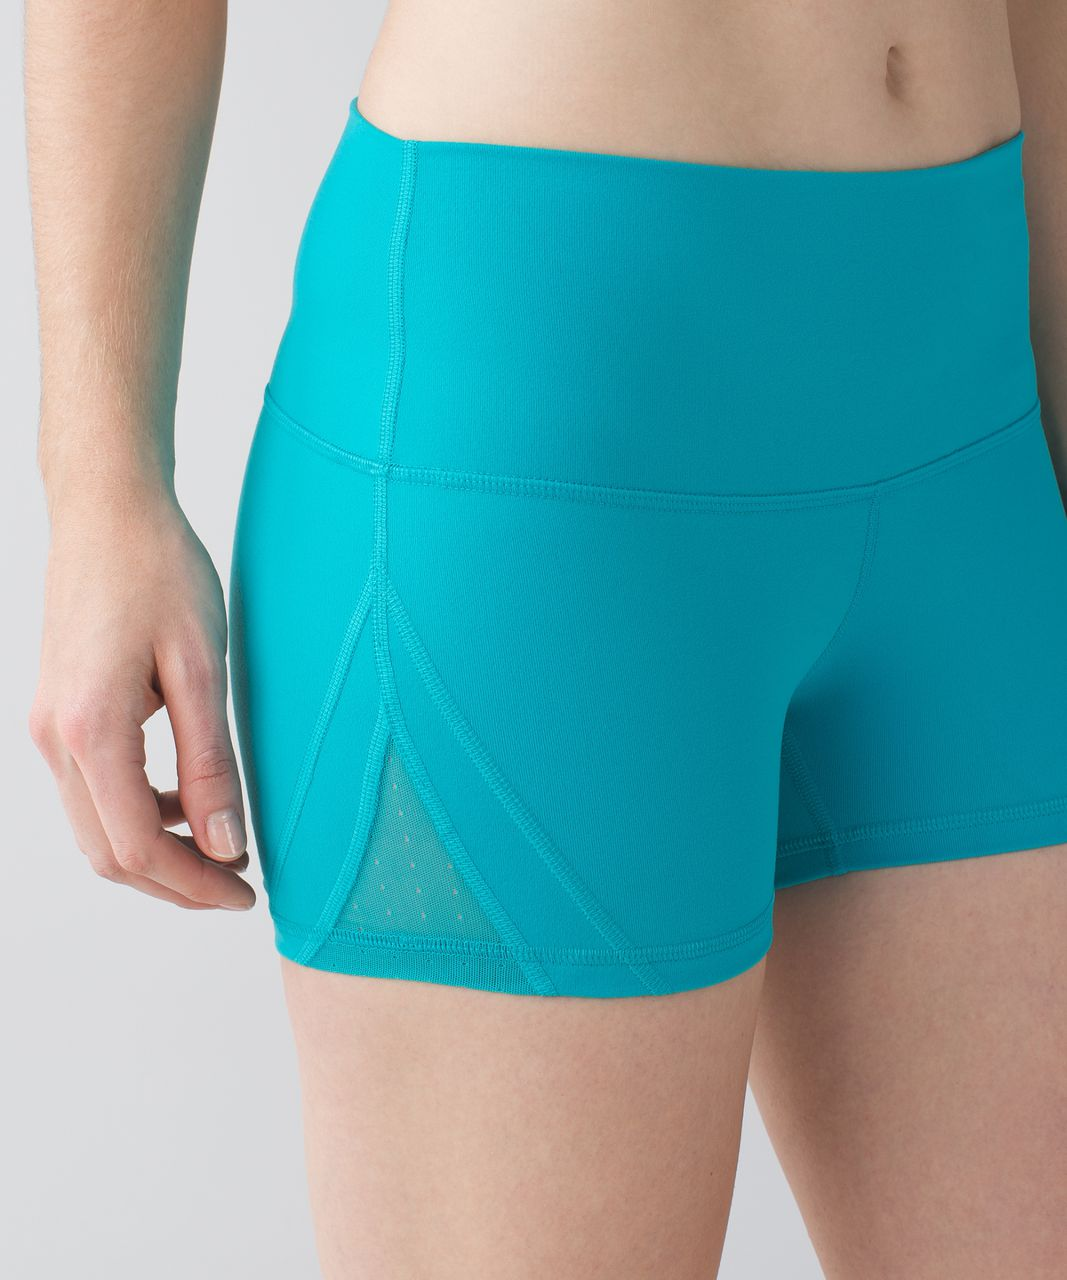 Lululemon Sweaty Endeavor Short *Full-On Luon - Peacock Blue